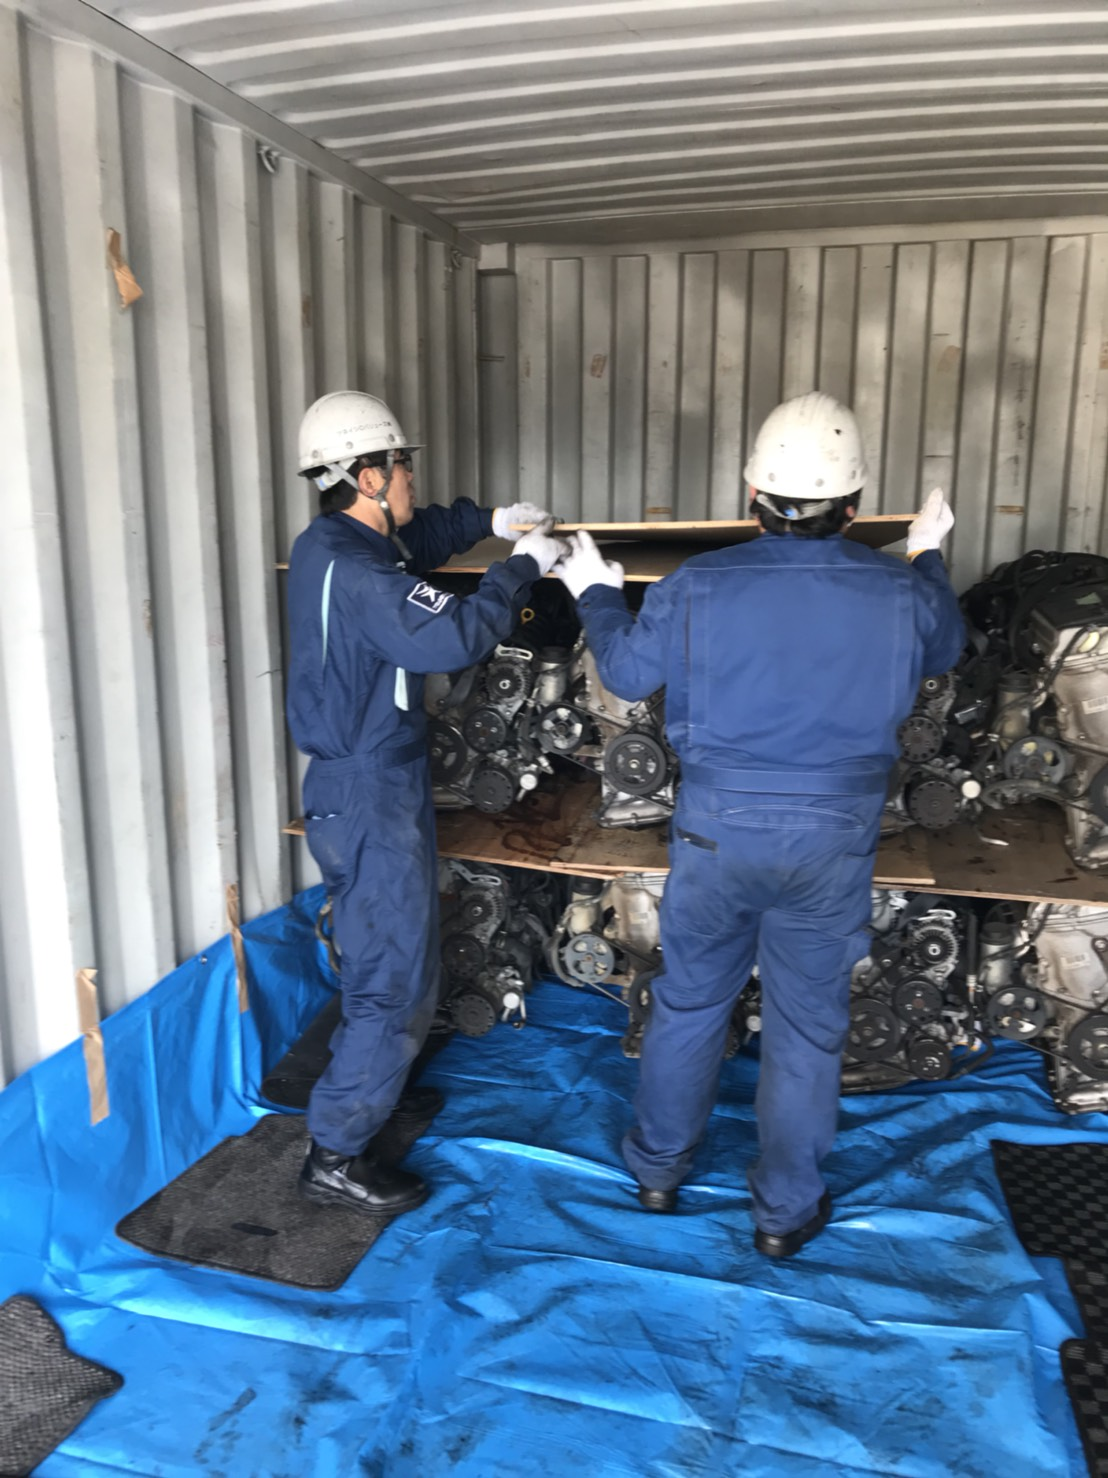 TSUNEISHI C VALUES sent its first shipment of recycled automobile parts to Myanmar